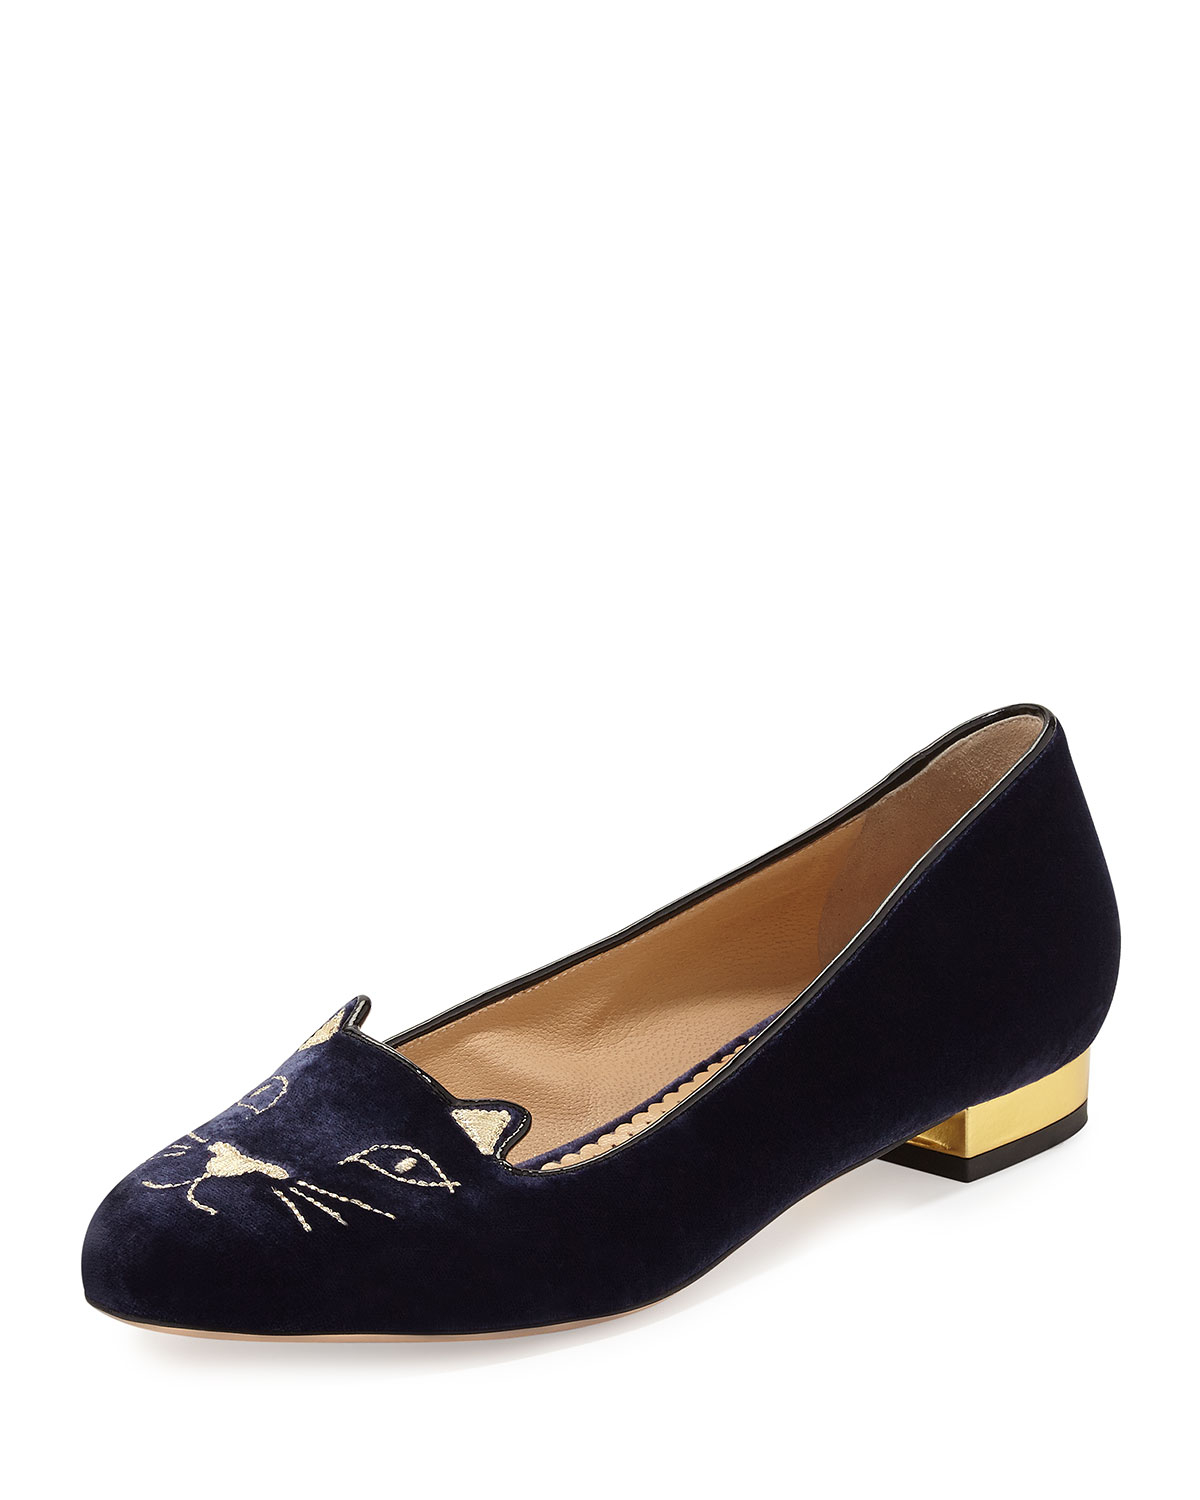 Charlotte Olympia Kitty Shoes On Sale